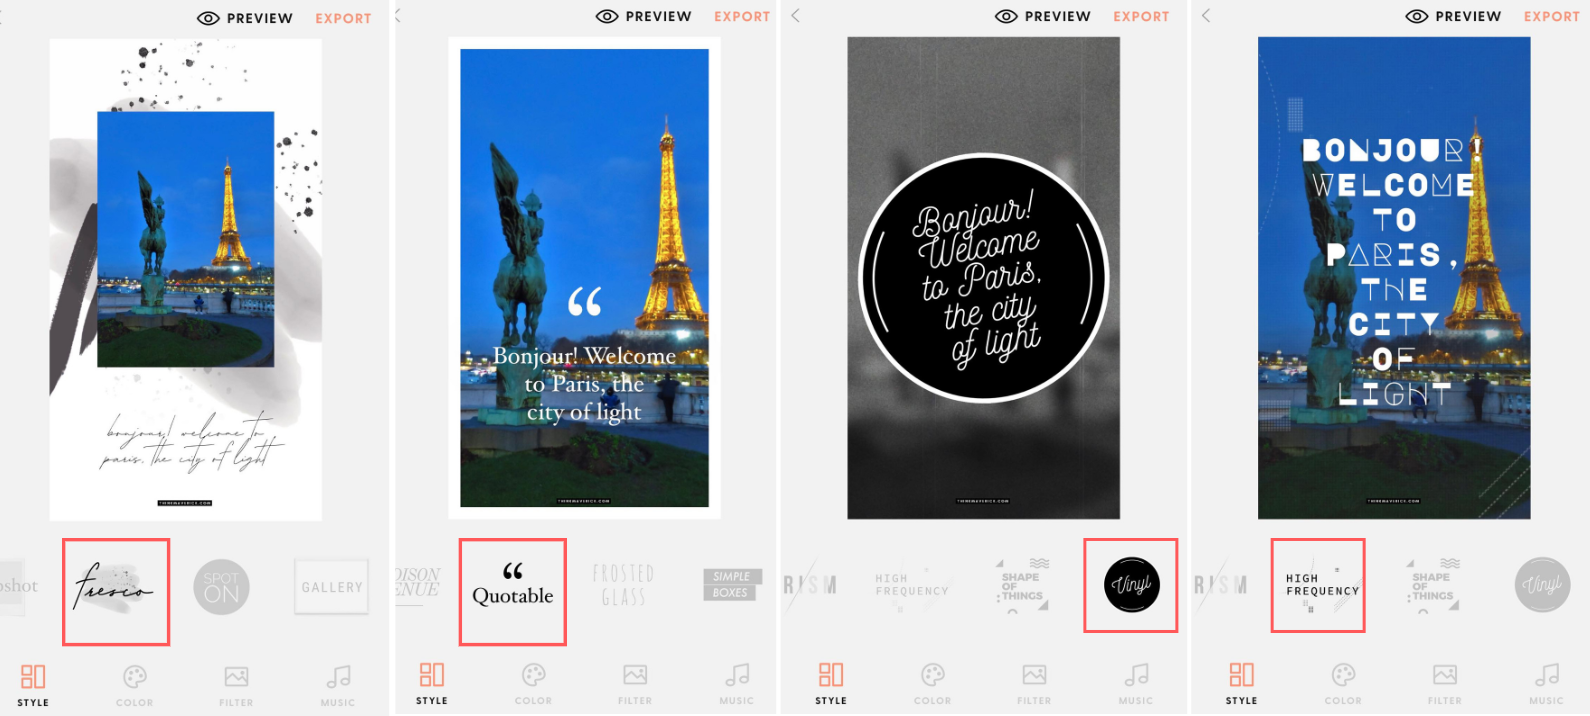 1631490405_59_How-to-Create-Animated-Instagram-Stories-in-Less-Than-1